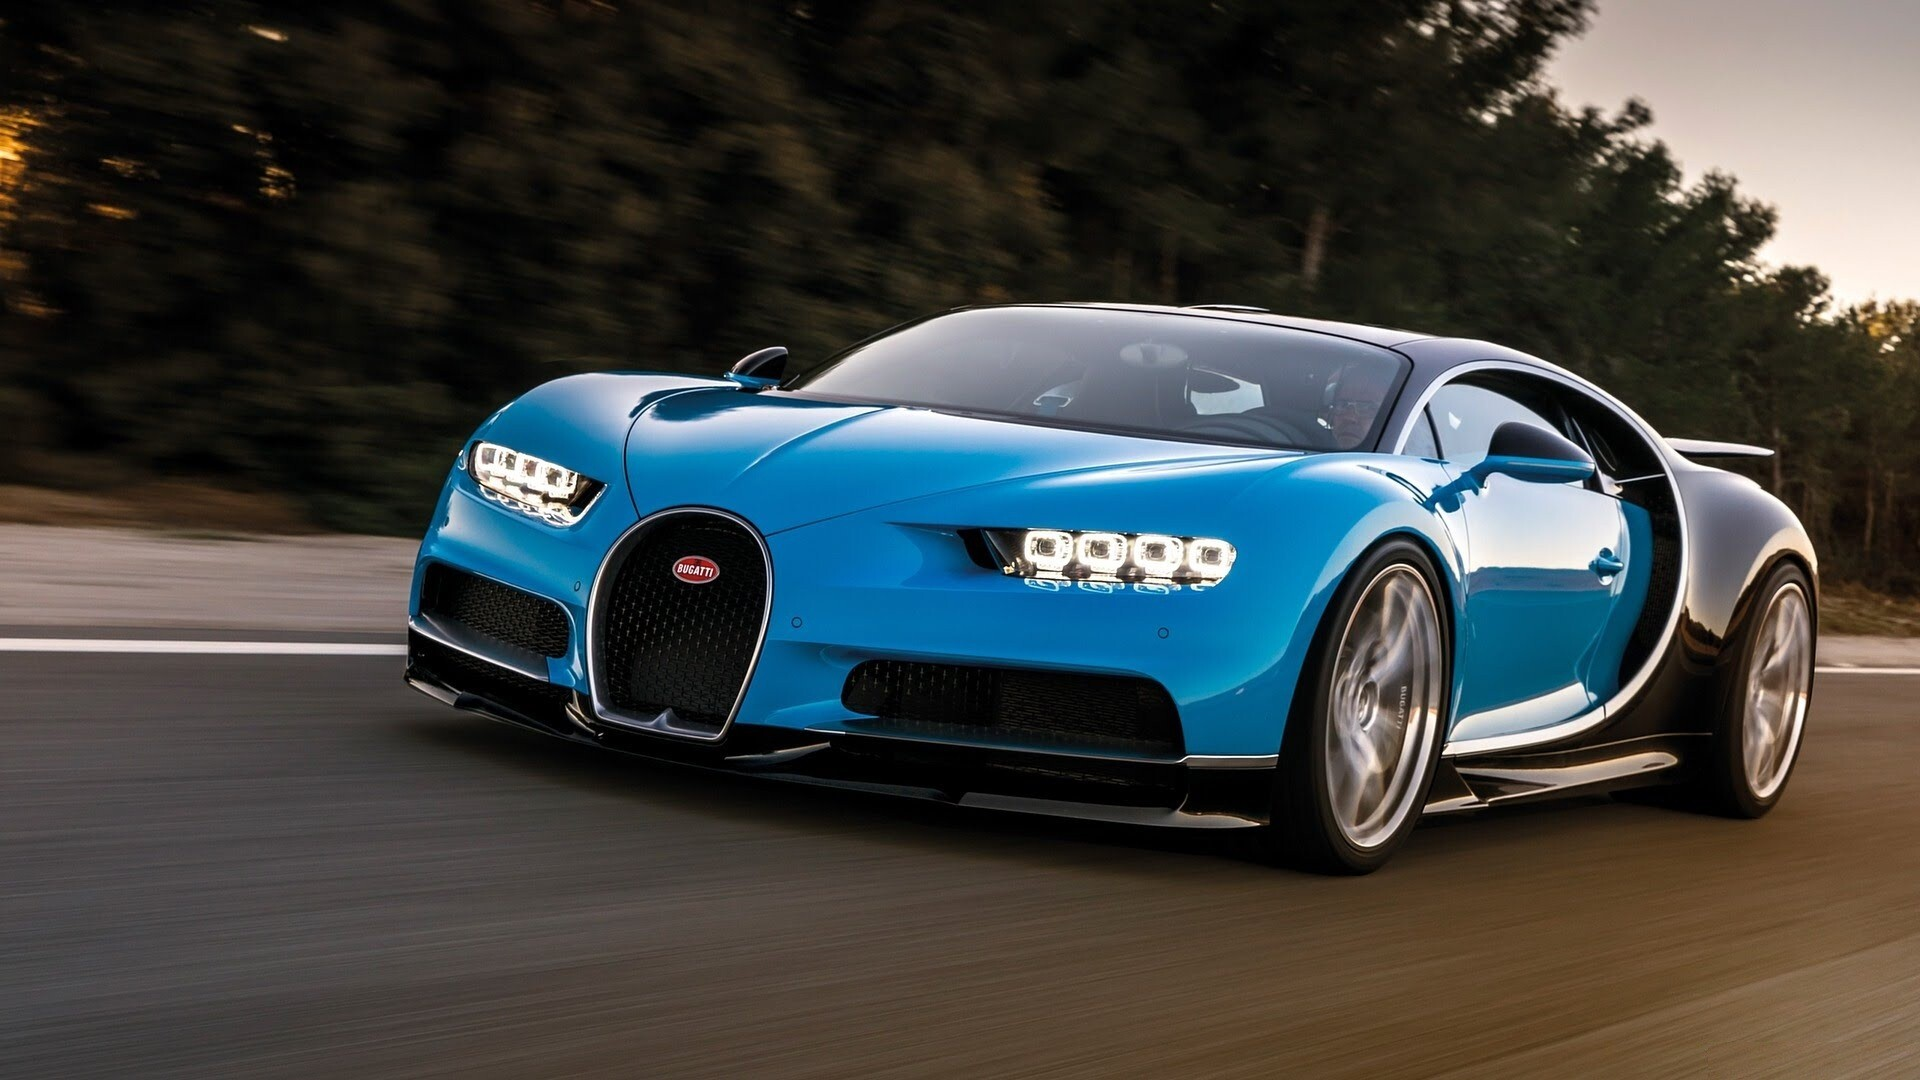 Bugatti Chiron Era Super Car Hd Wallpapers Hd Wallpapers